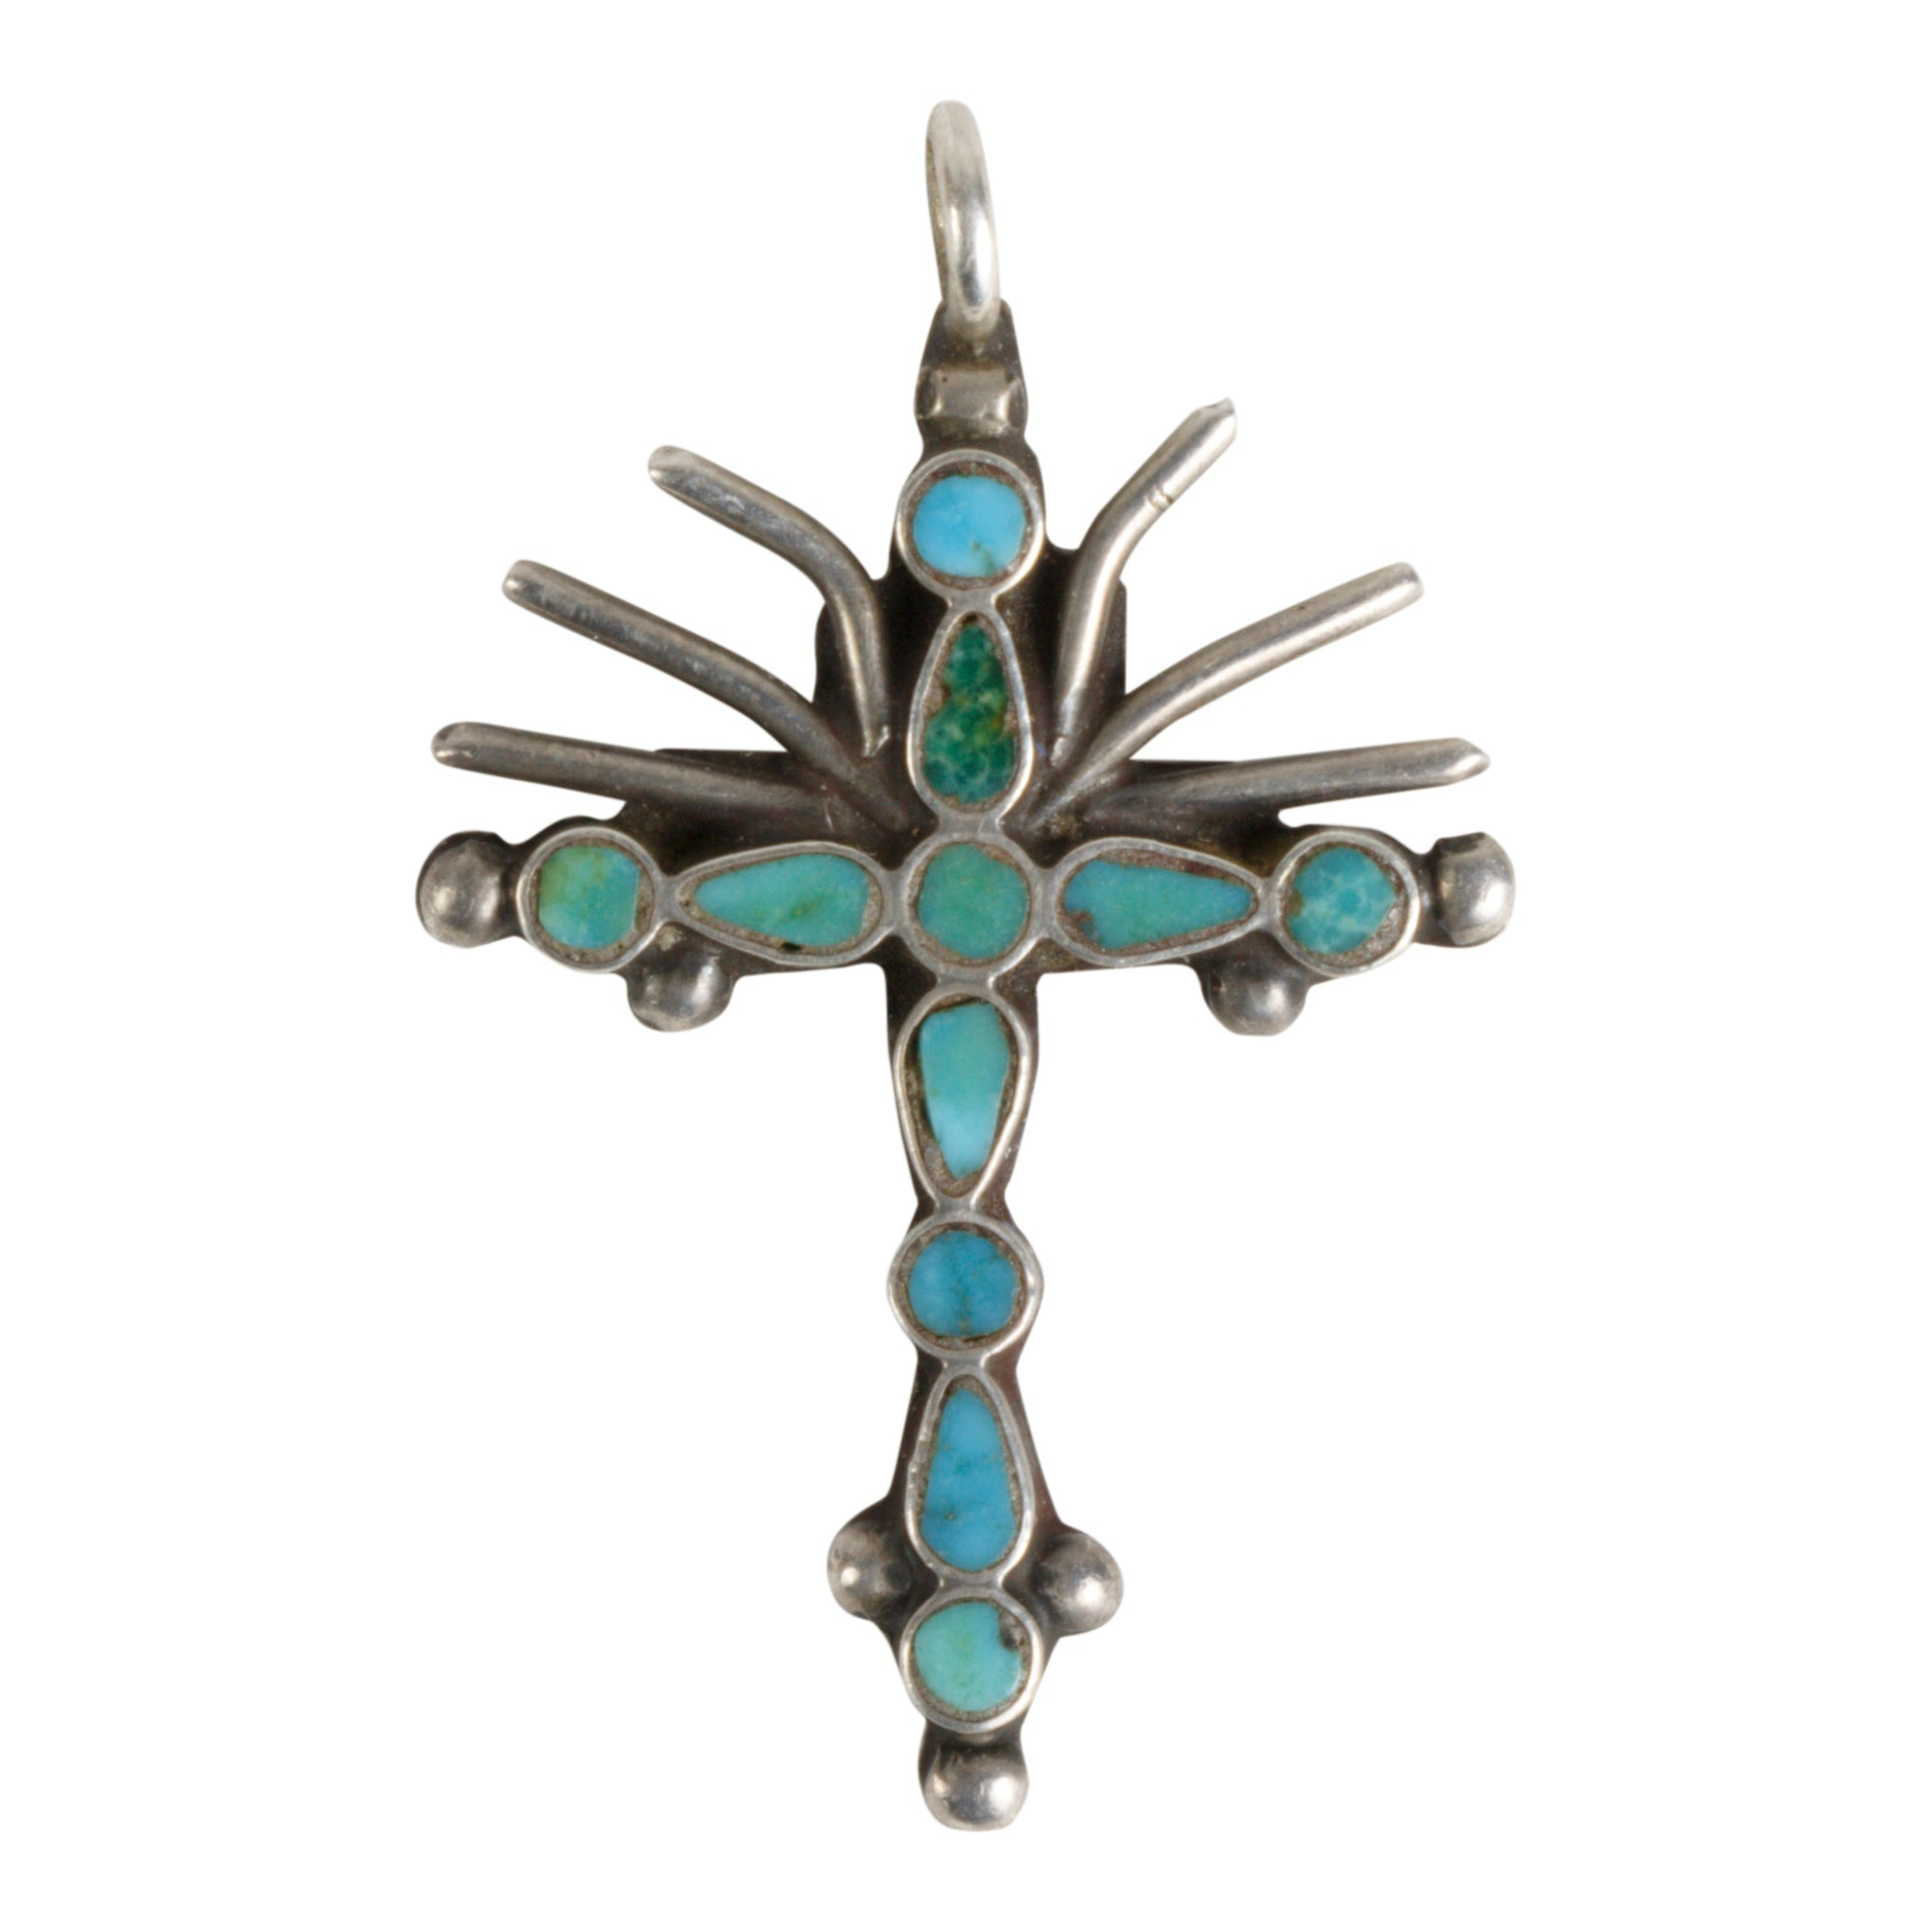 Miniature Zuni Cross Pendant cross pendants, crosses, necklaces, pendants, turquoise, zuni